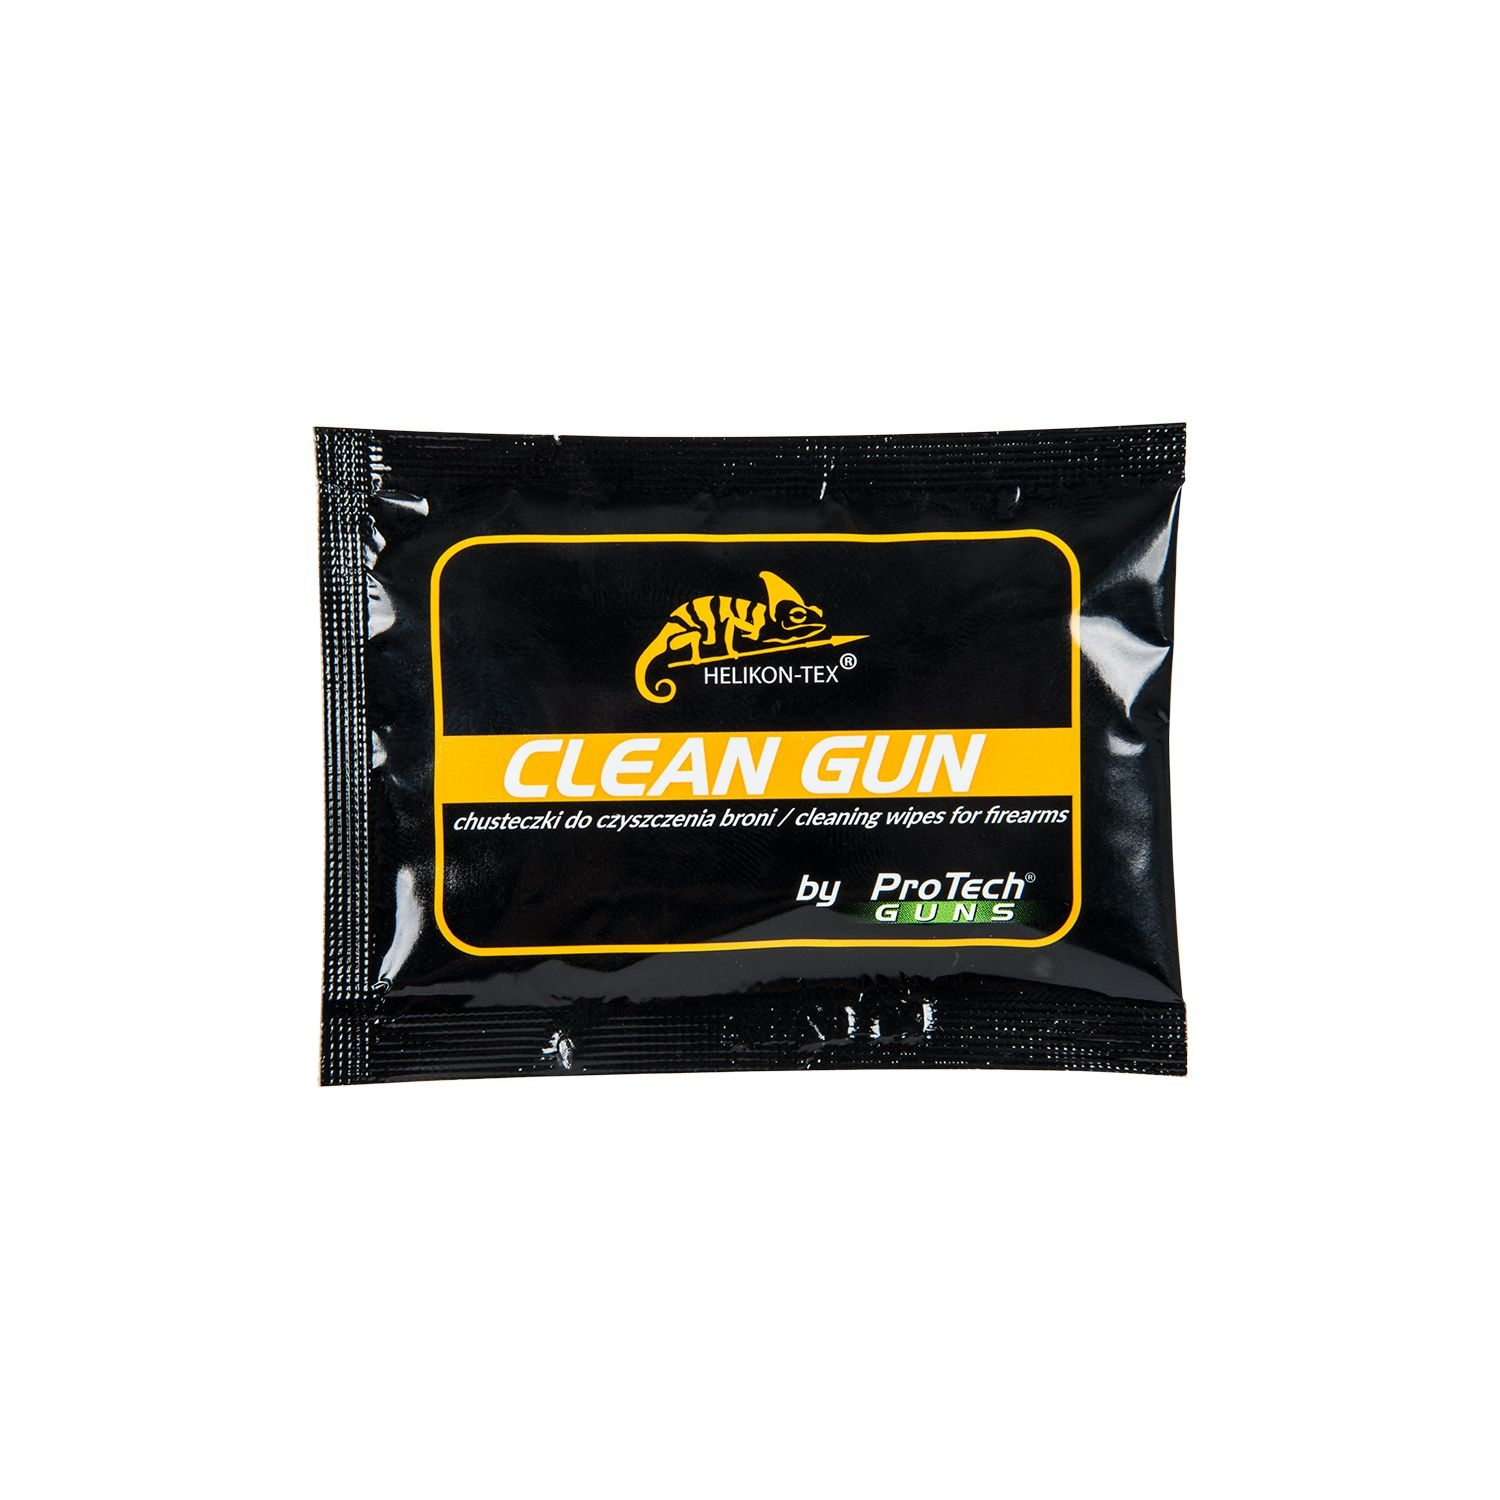 Helikon-Tex® CLEAN GUN WEAPON CLEANING WIPES